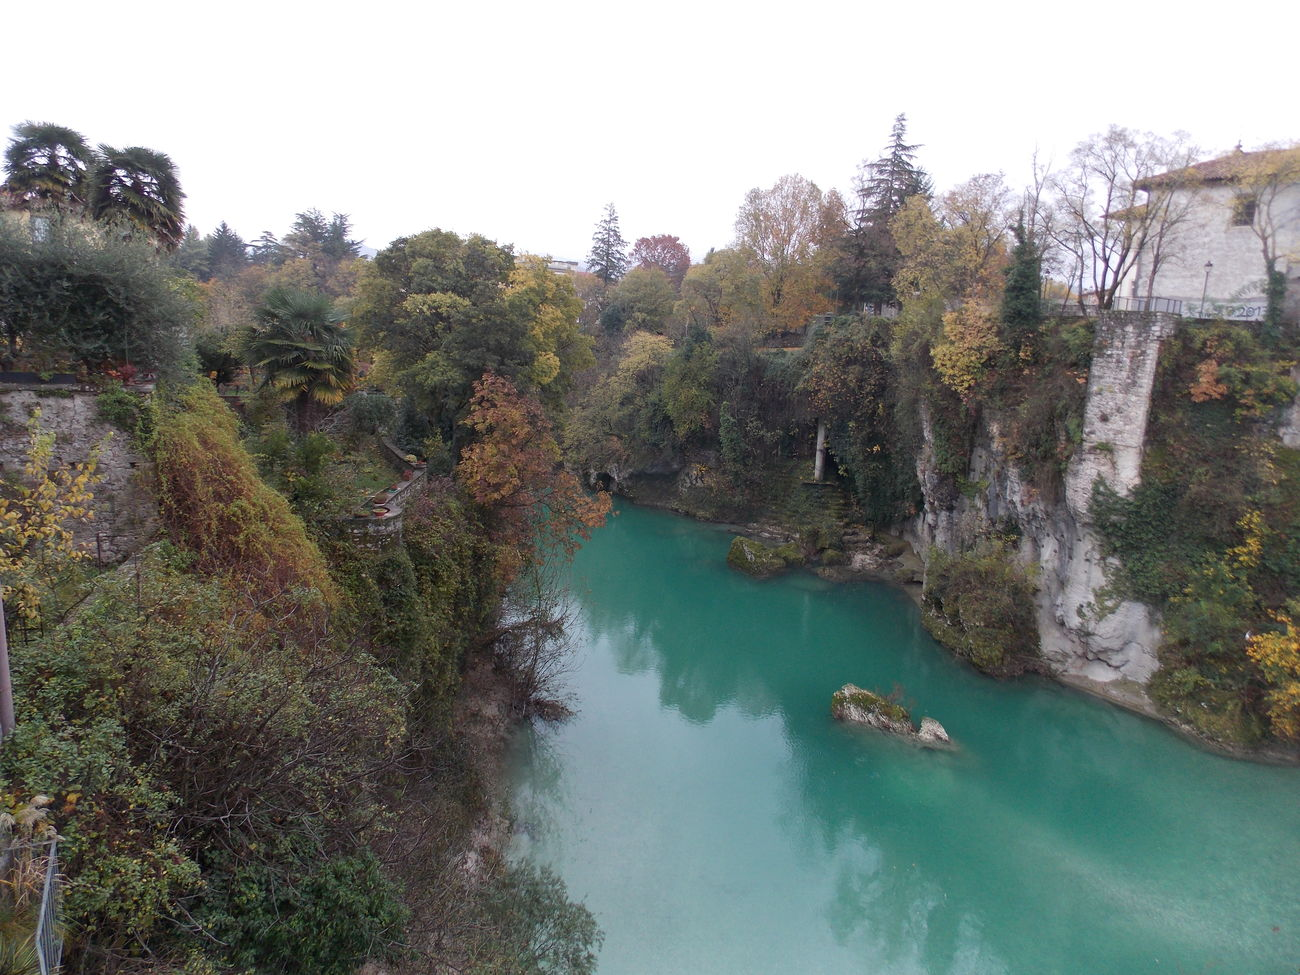 Cividale Del Friuli Devil's Bridge Pontedeldiavolo From My Point Of View Wildlife & Nature Wildlife Urban Nature Naturemeetsman